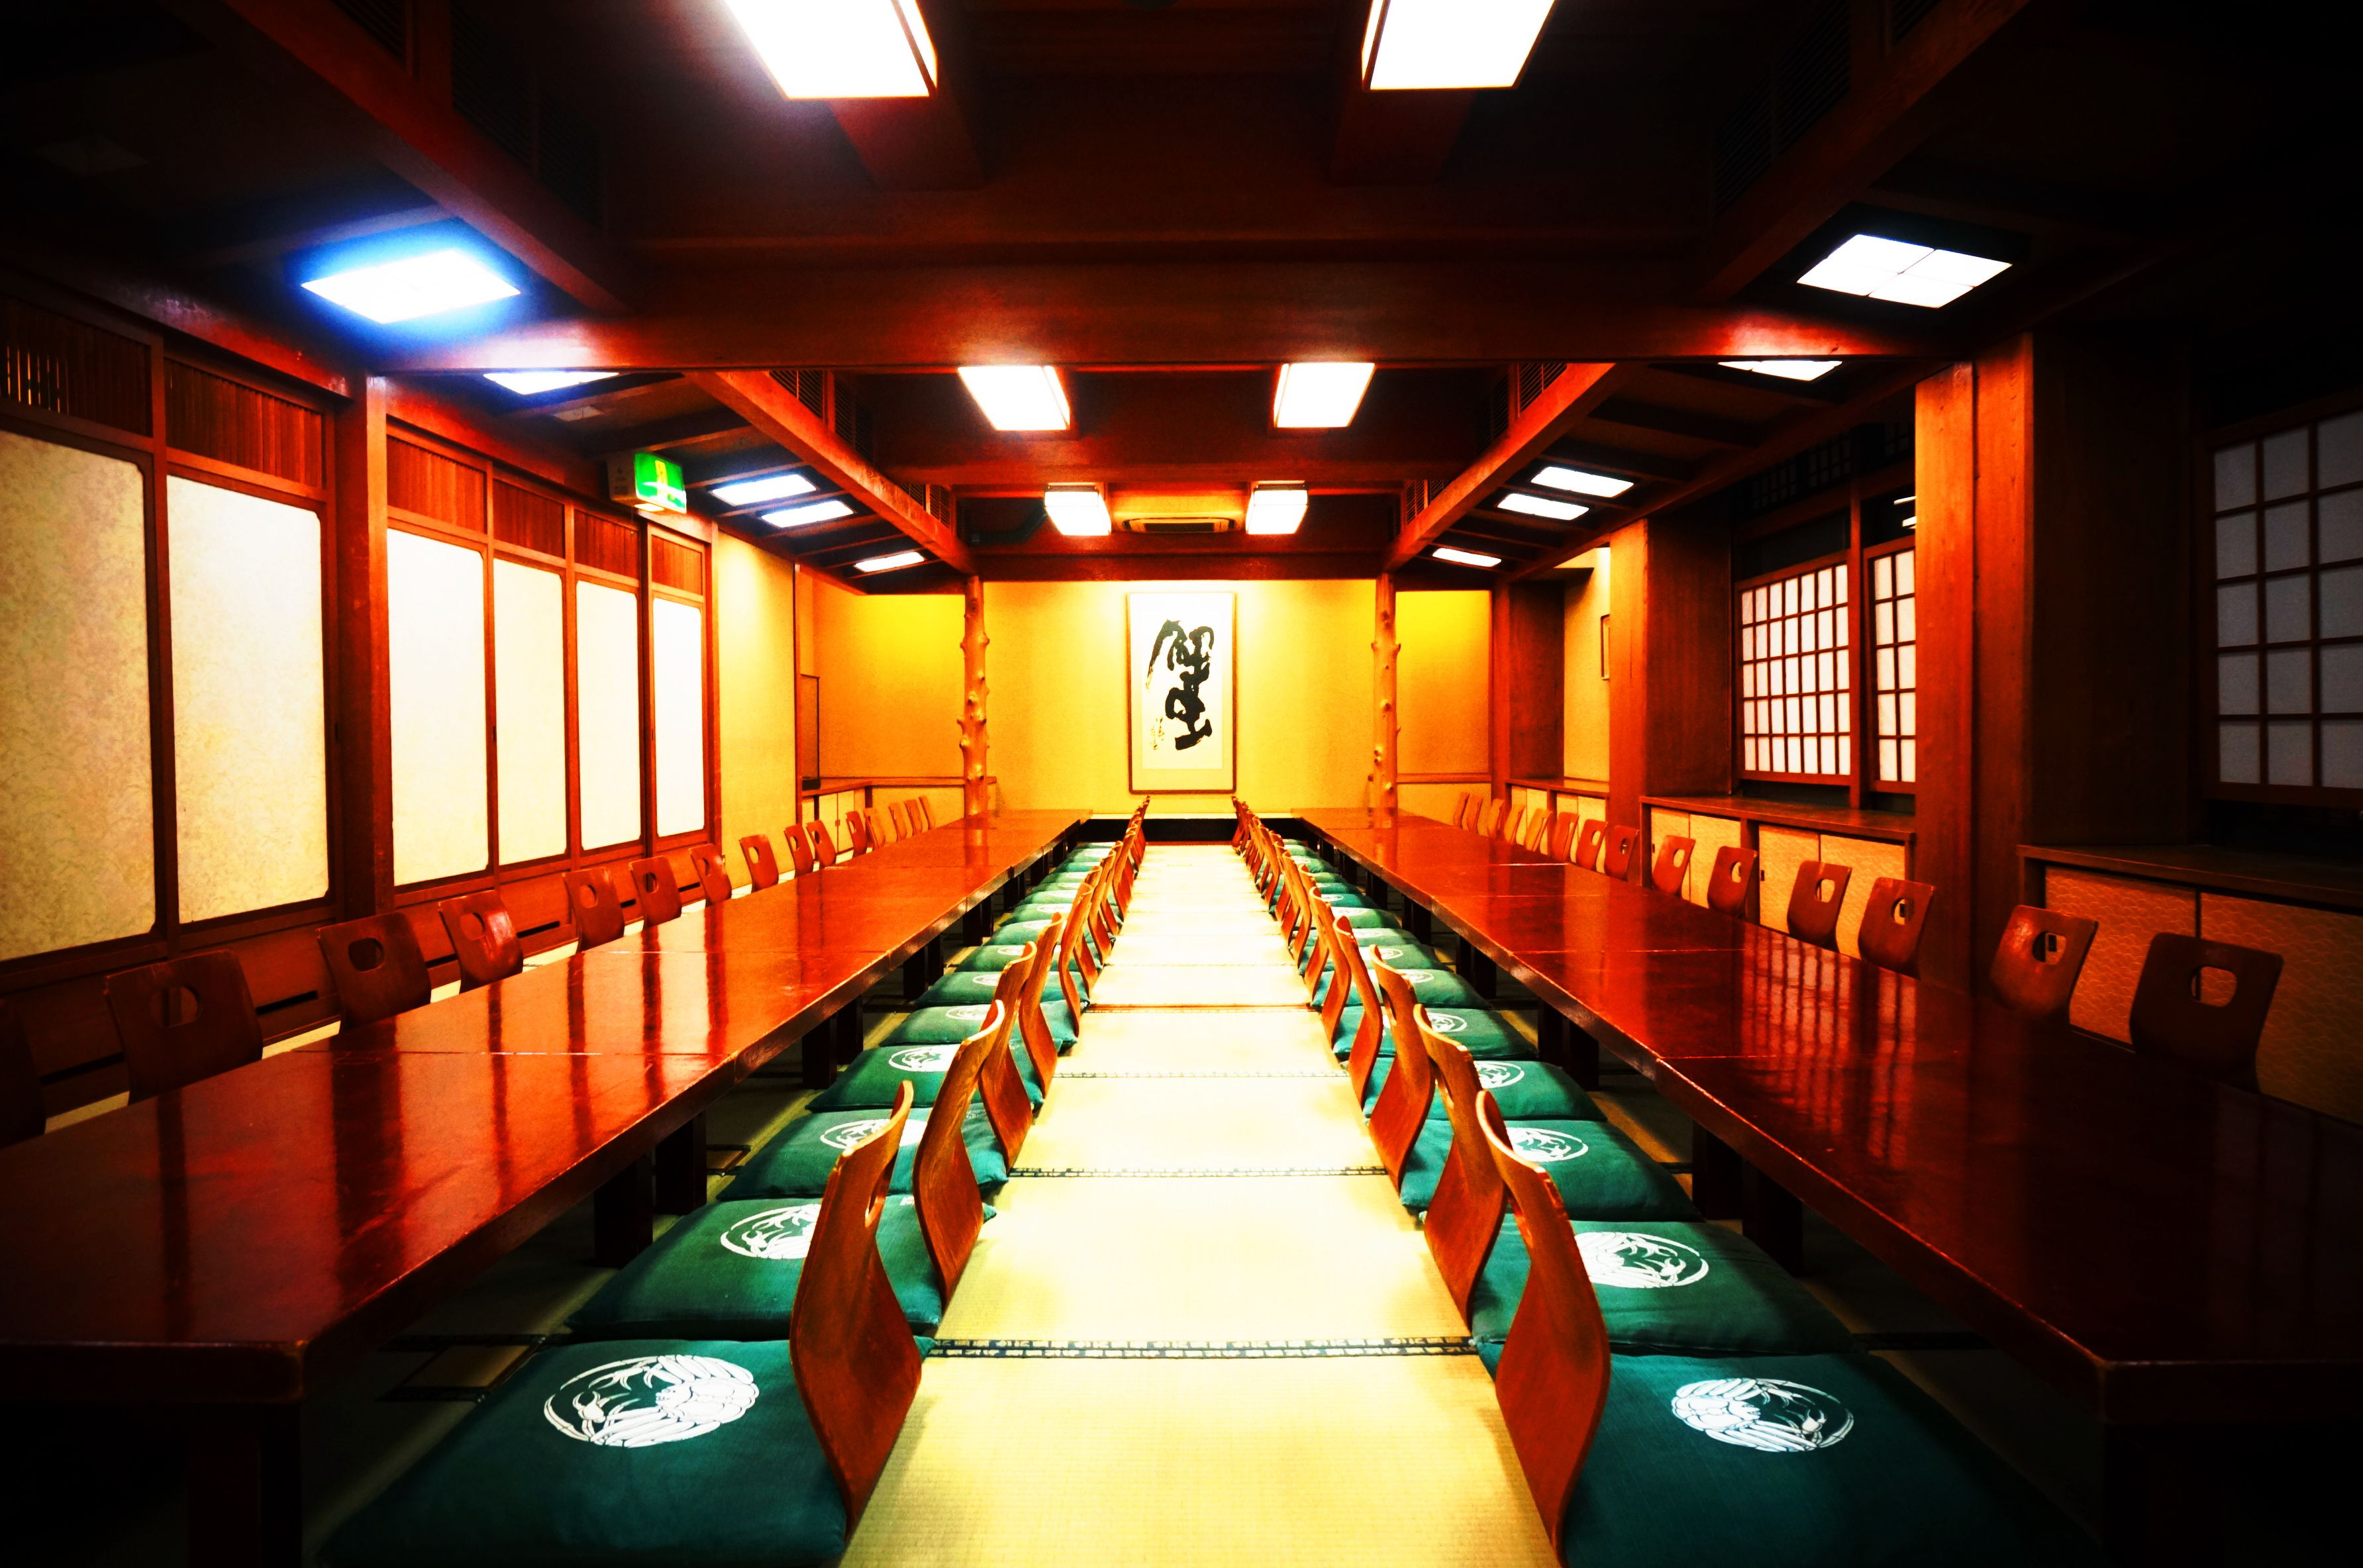 Large hall of Matsuyama branch introspectiveness - 3F 60 people accommodation